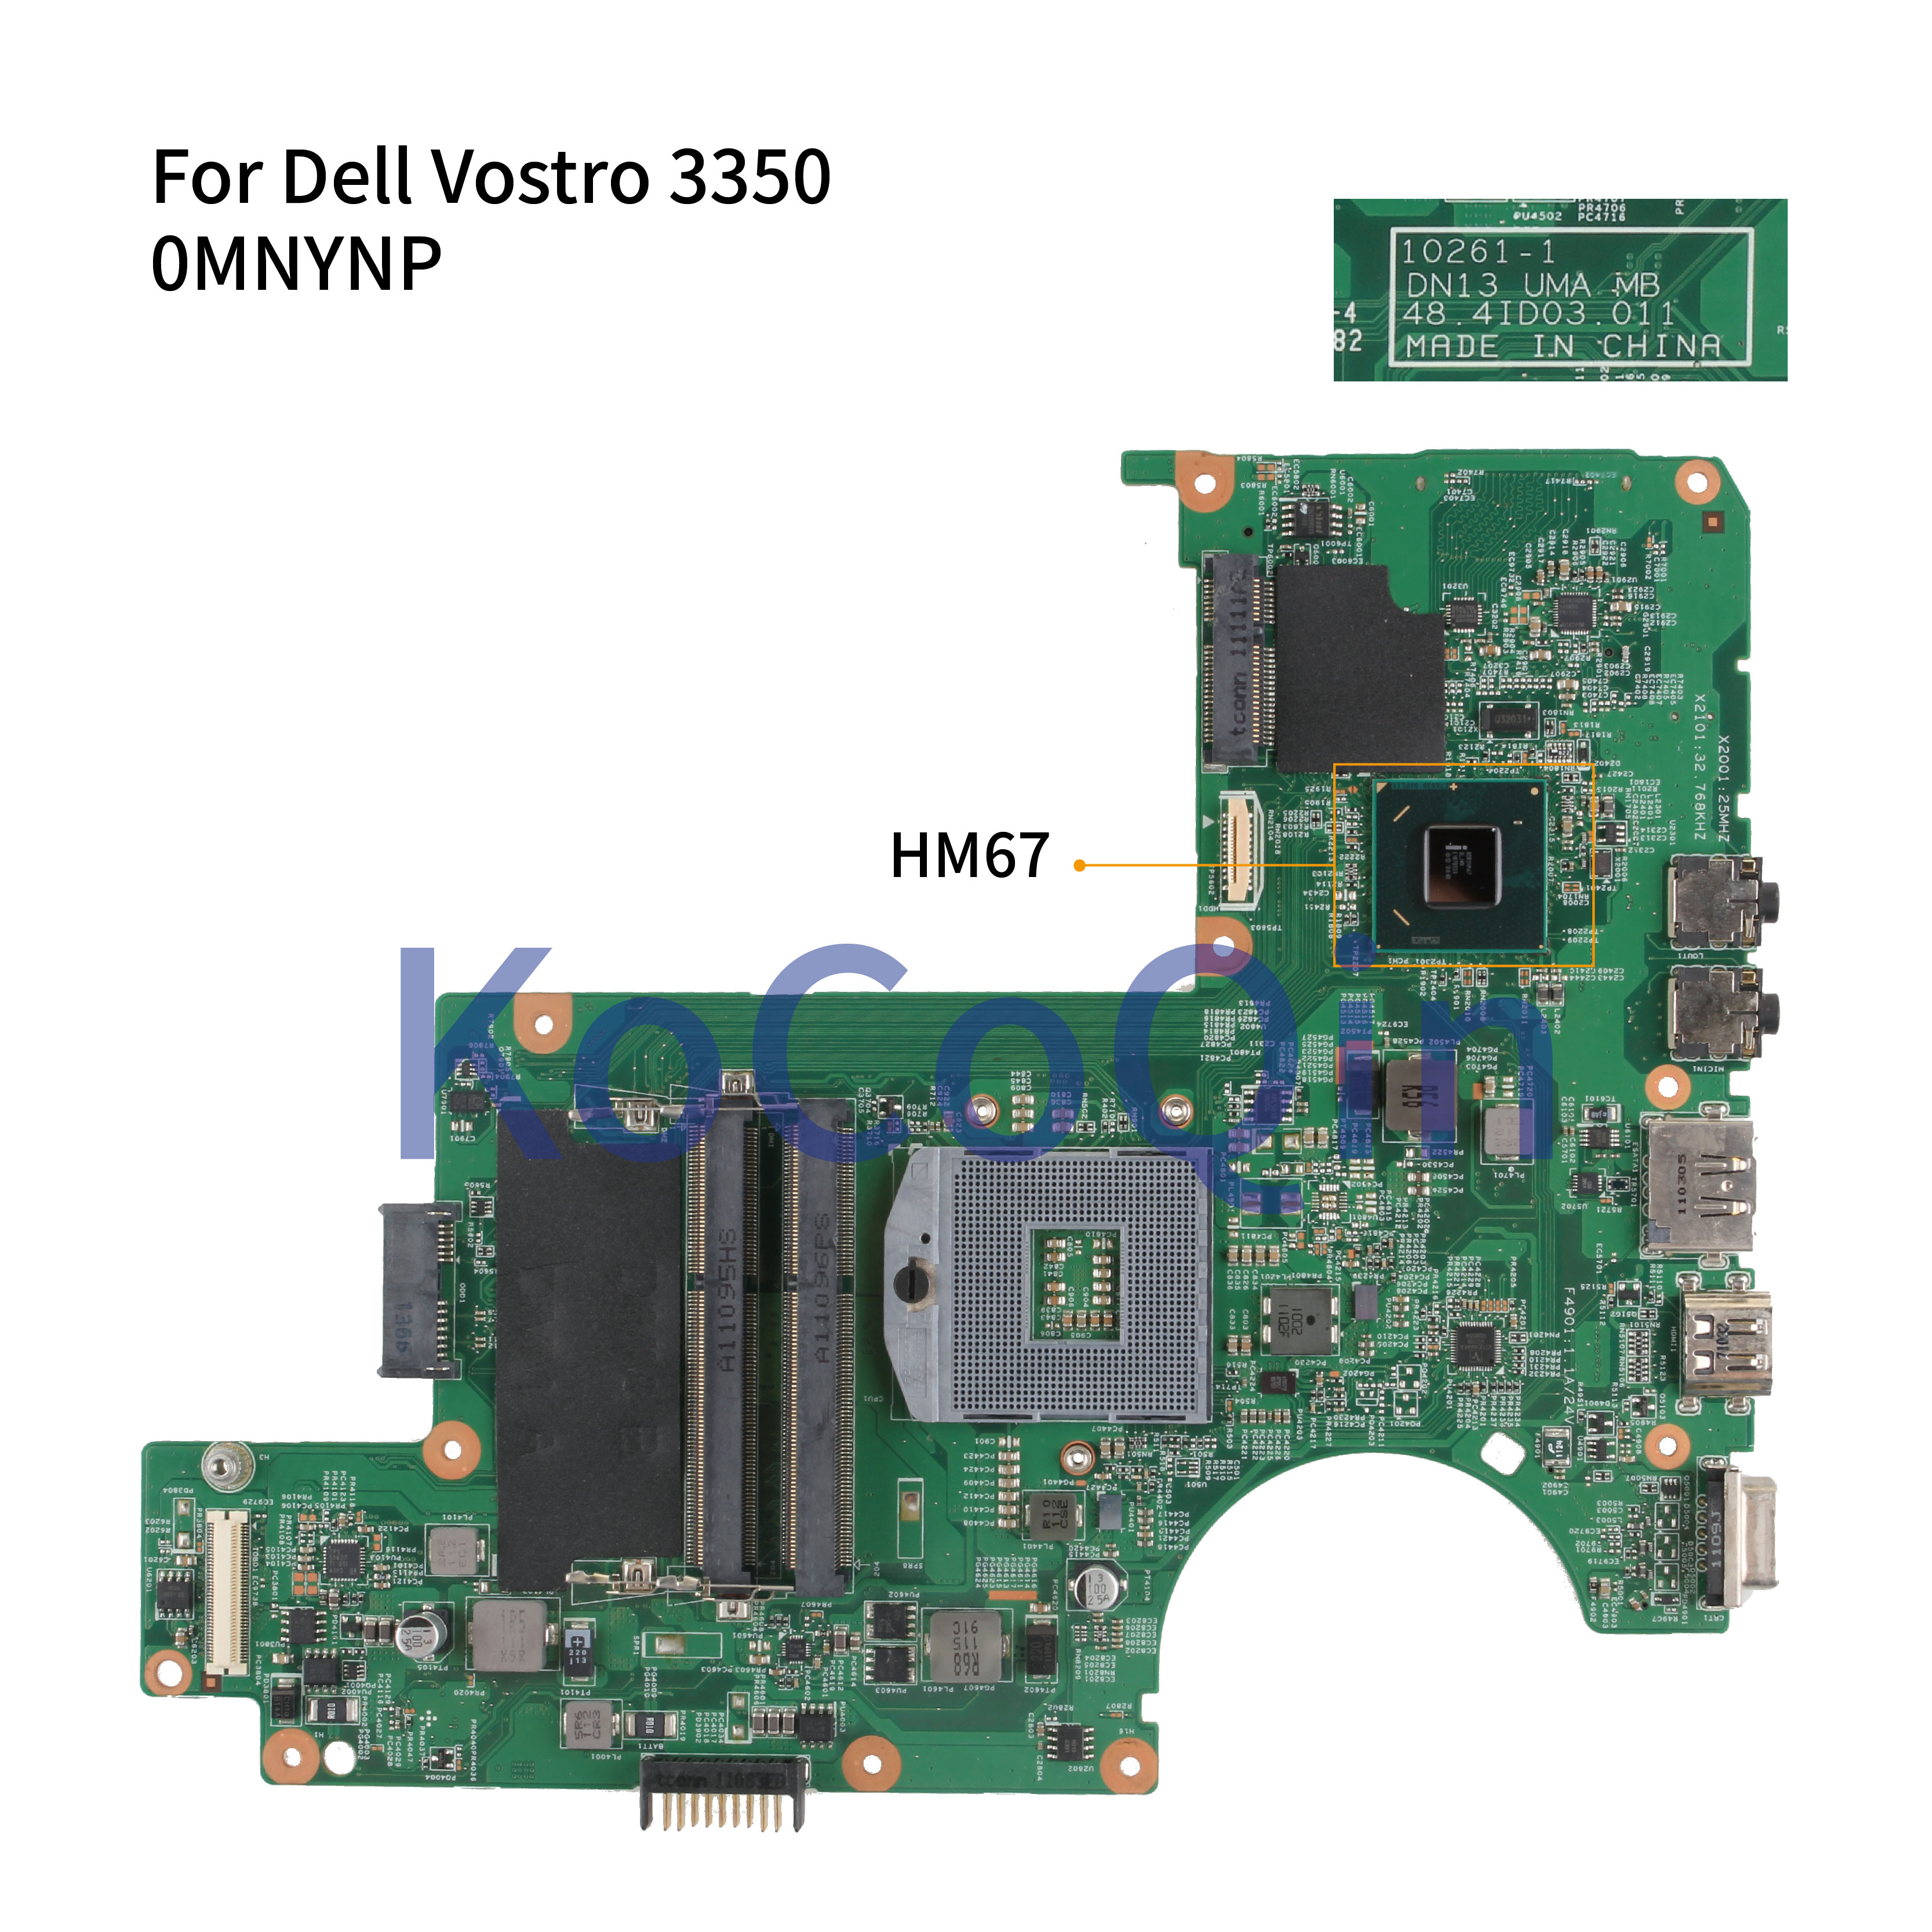 KoCoQin Laptop Motherboard For Dell Vostro 3350 V3350 Mainboard 0MNYNP CN-0MNYNP 10261-1 48.4ID03.011 HM67